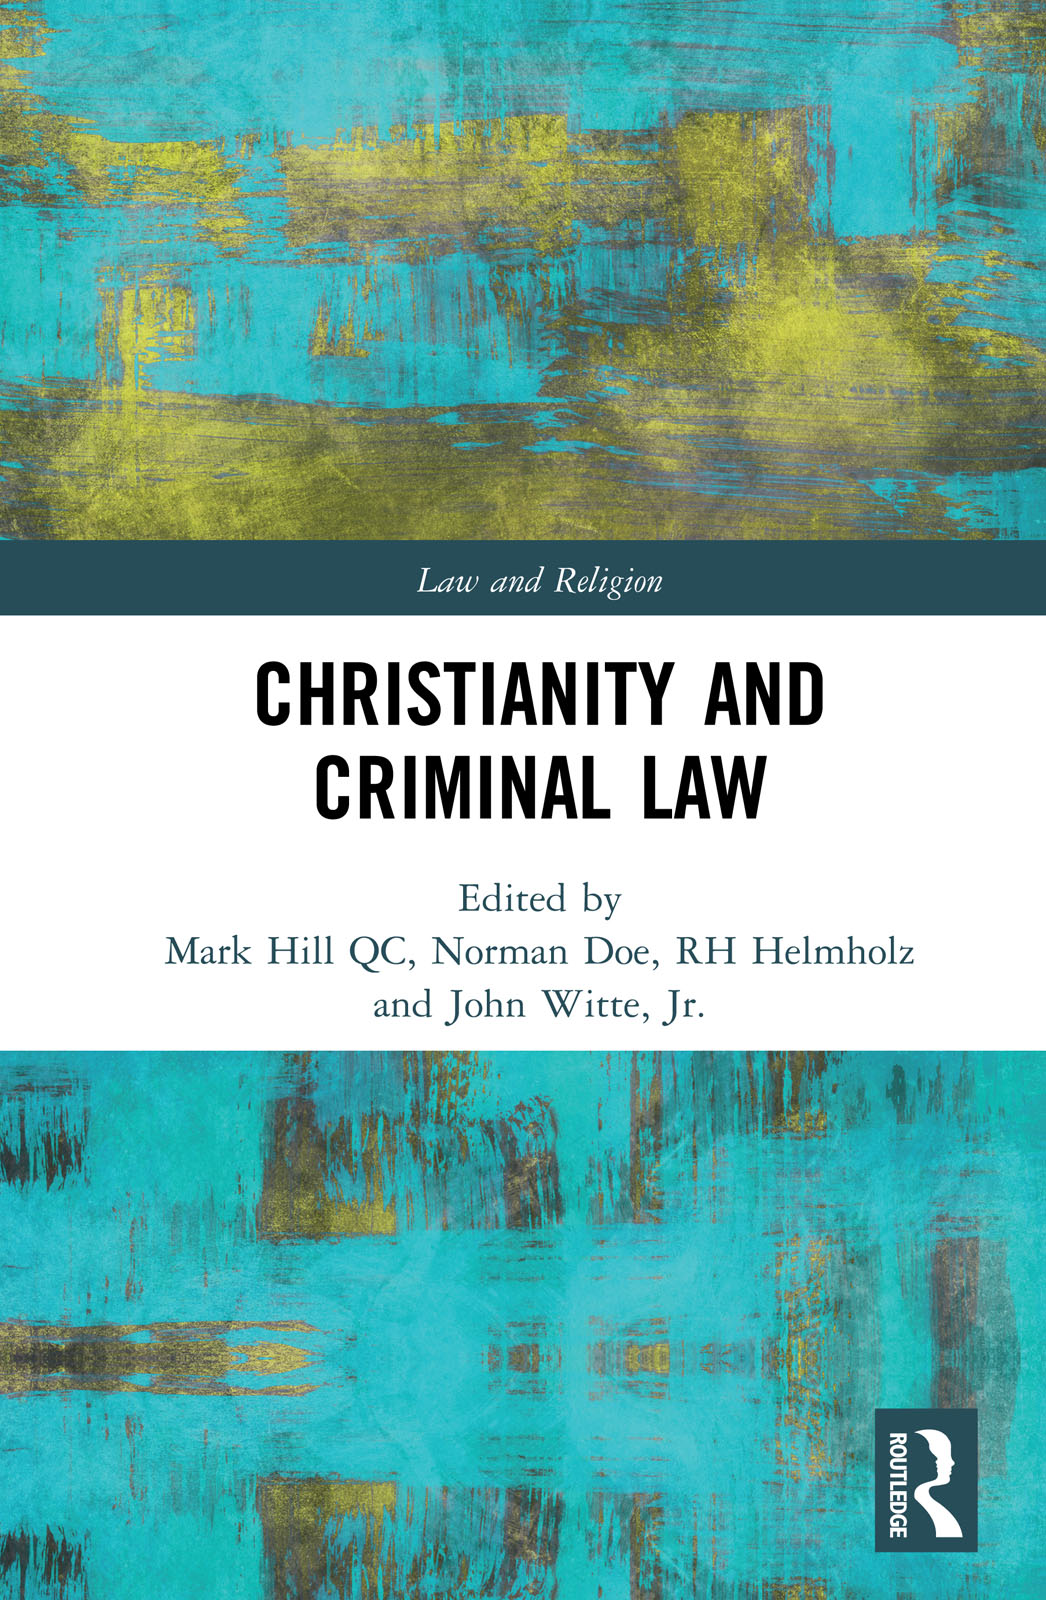 Christianity and Criminal Law